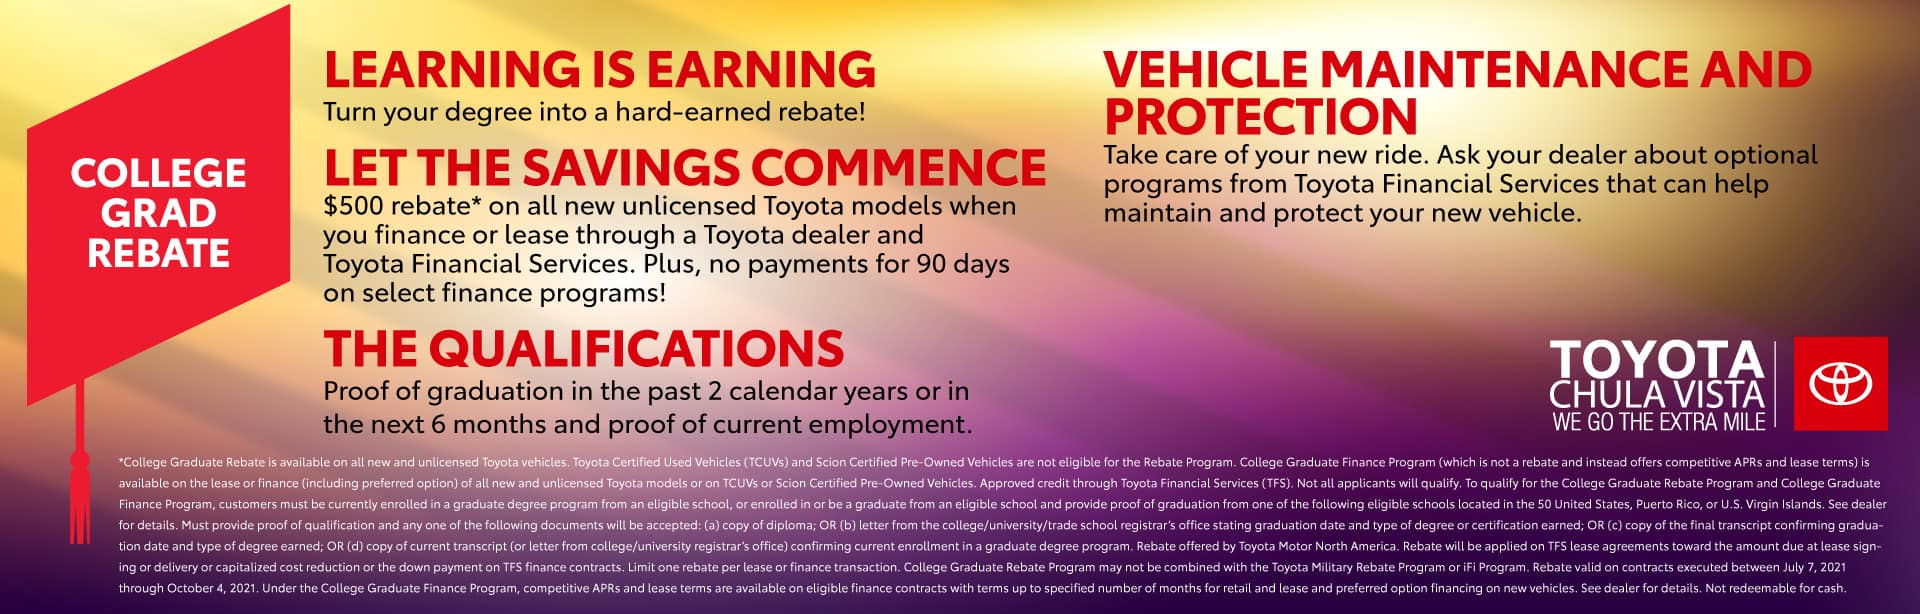 TCV_1920x614_Offers_Aug2_College Rebate